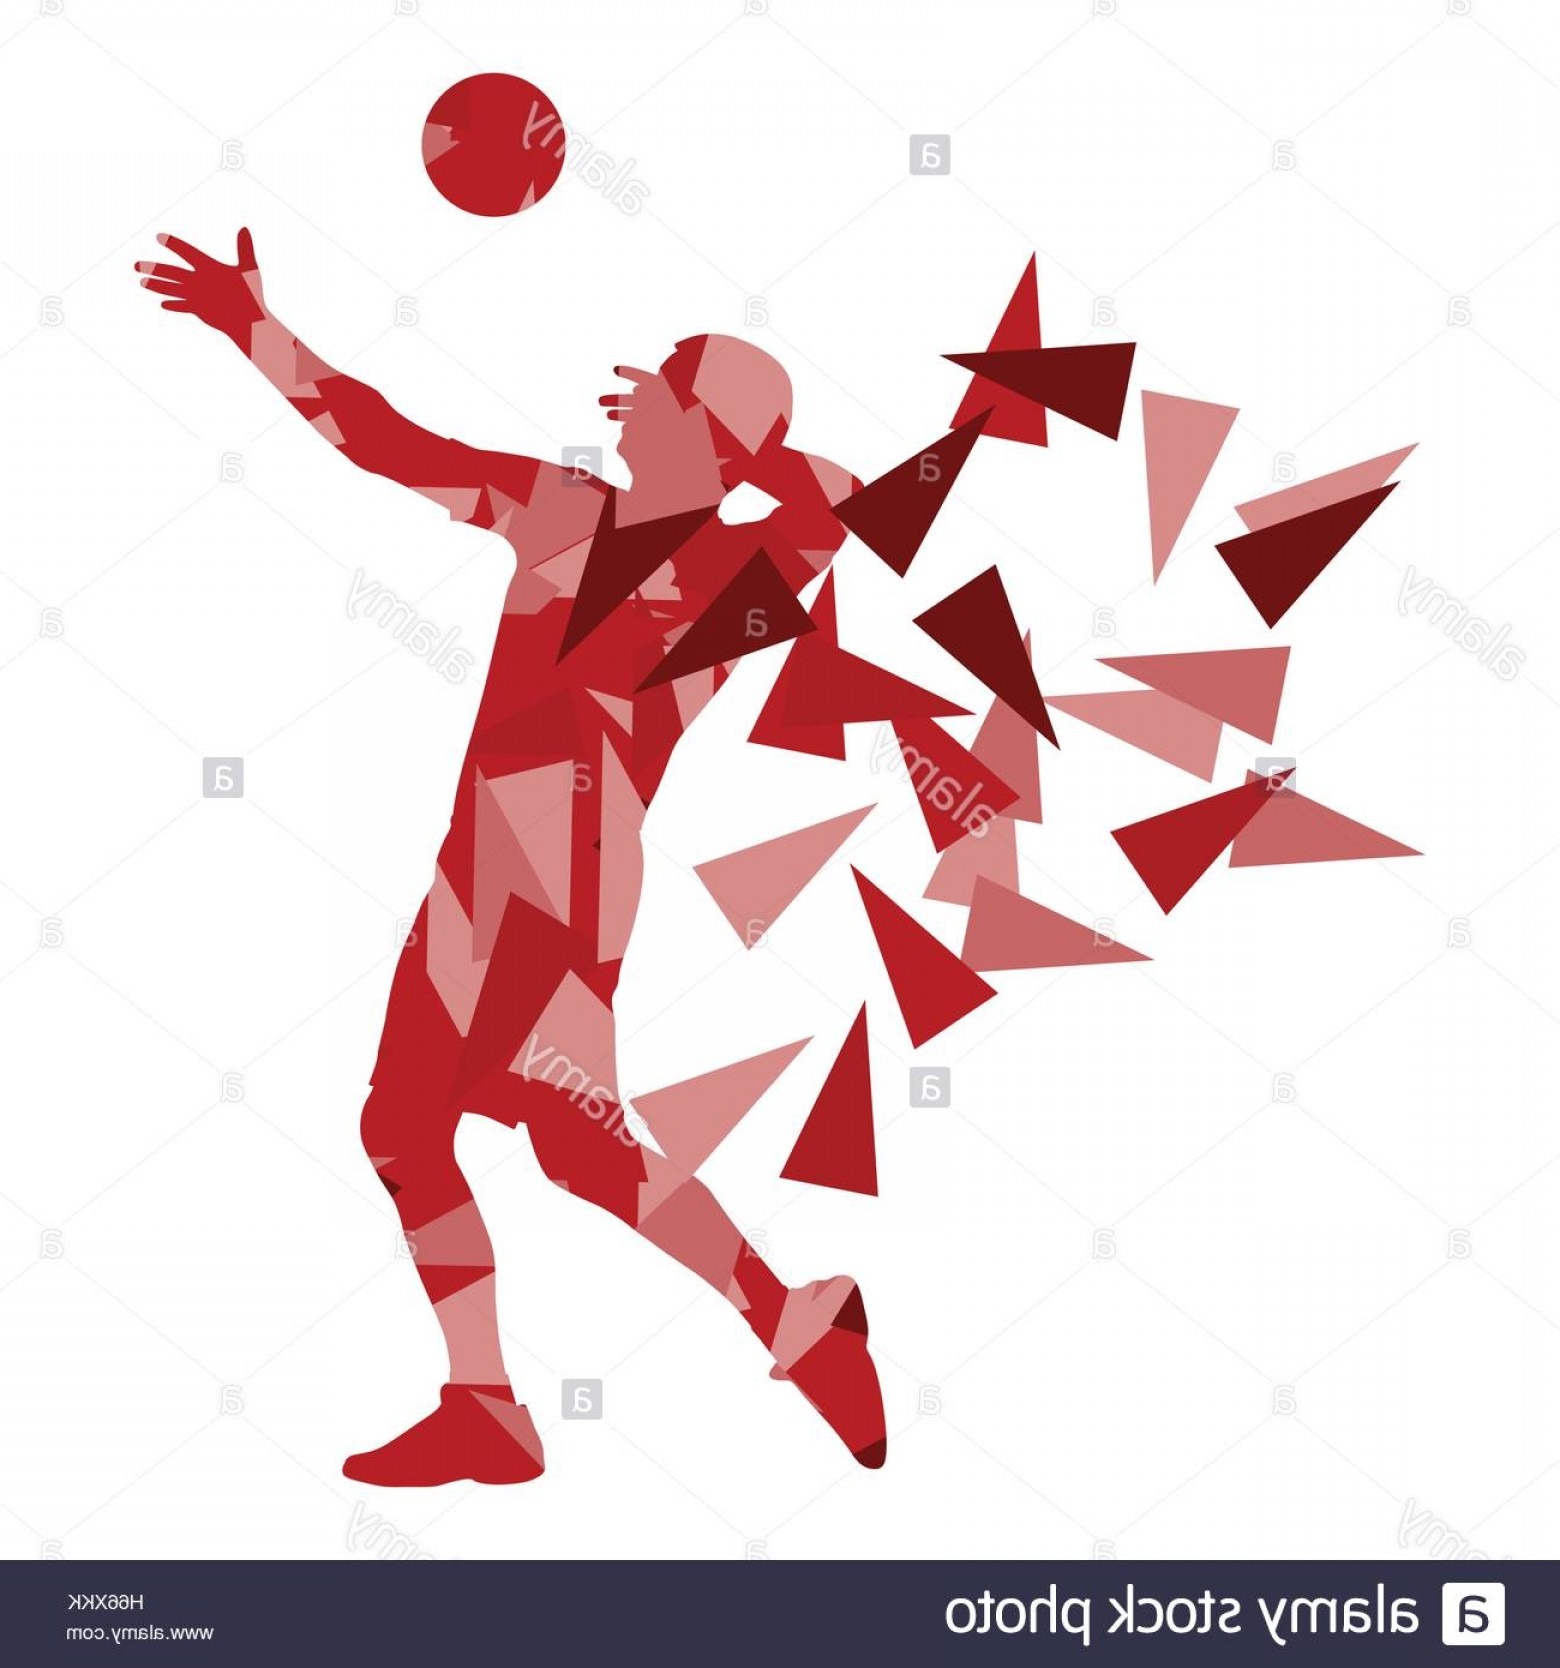 Volleyball Player Vector: Stock Photo Volleyball Player Man Silhouette Made Of Polygon Fragments Vector